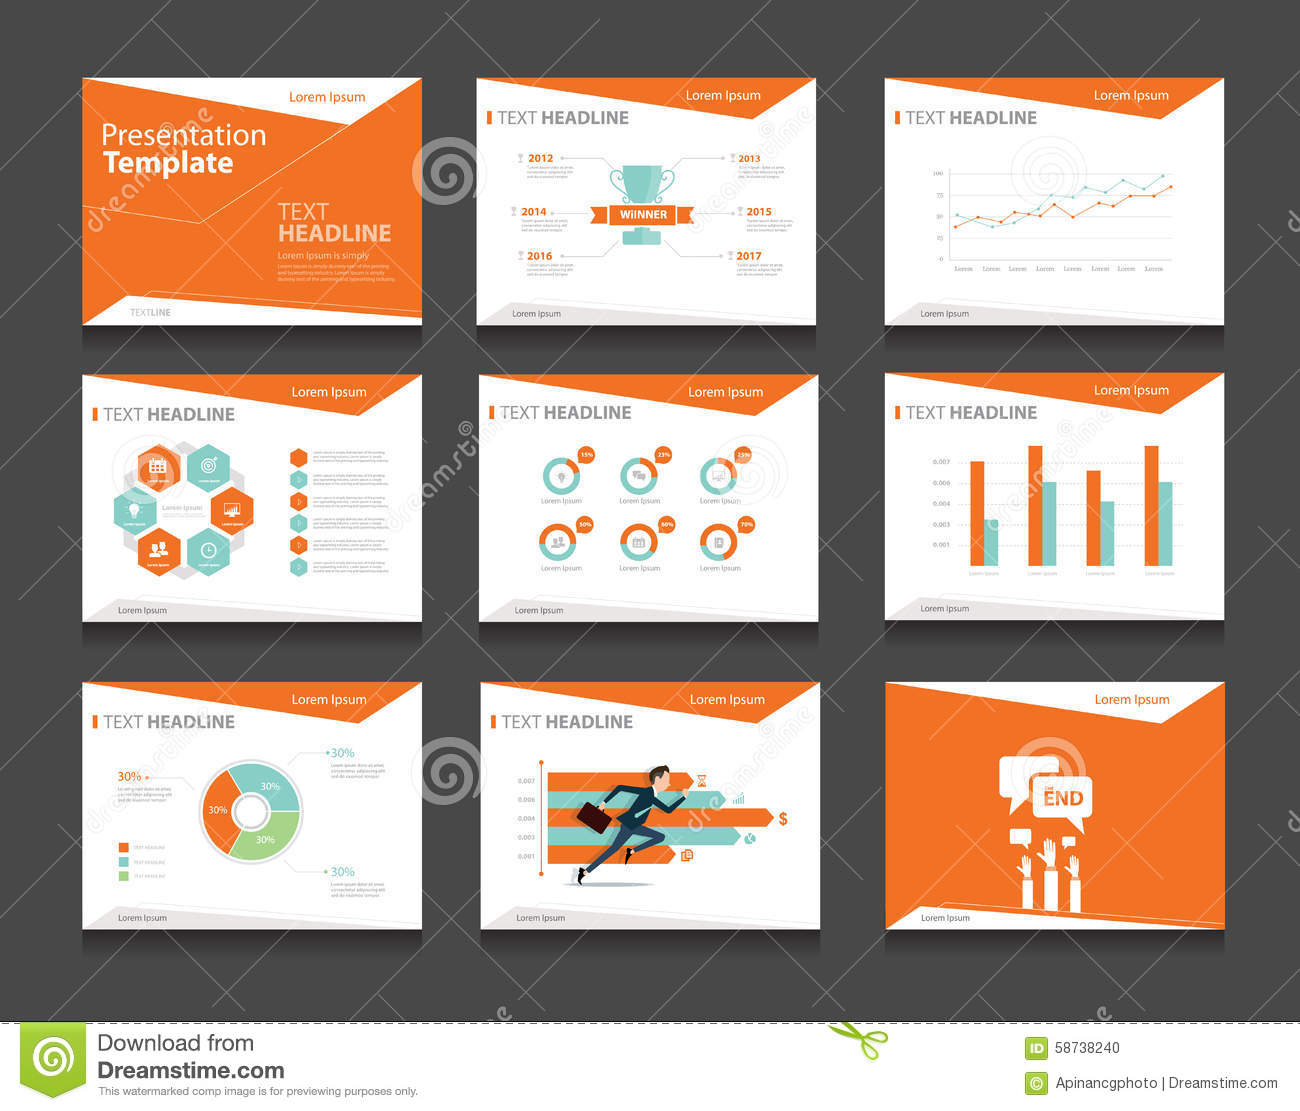 design professional presentation for your business needs by yusrafahads